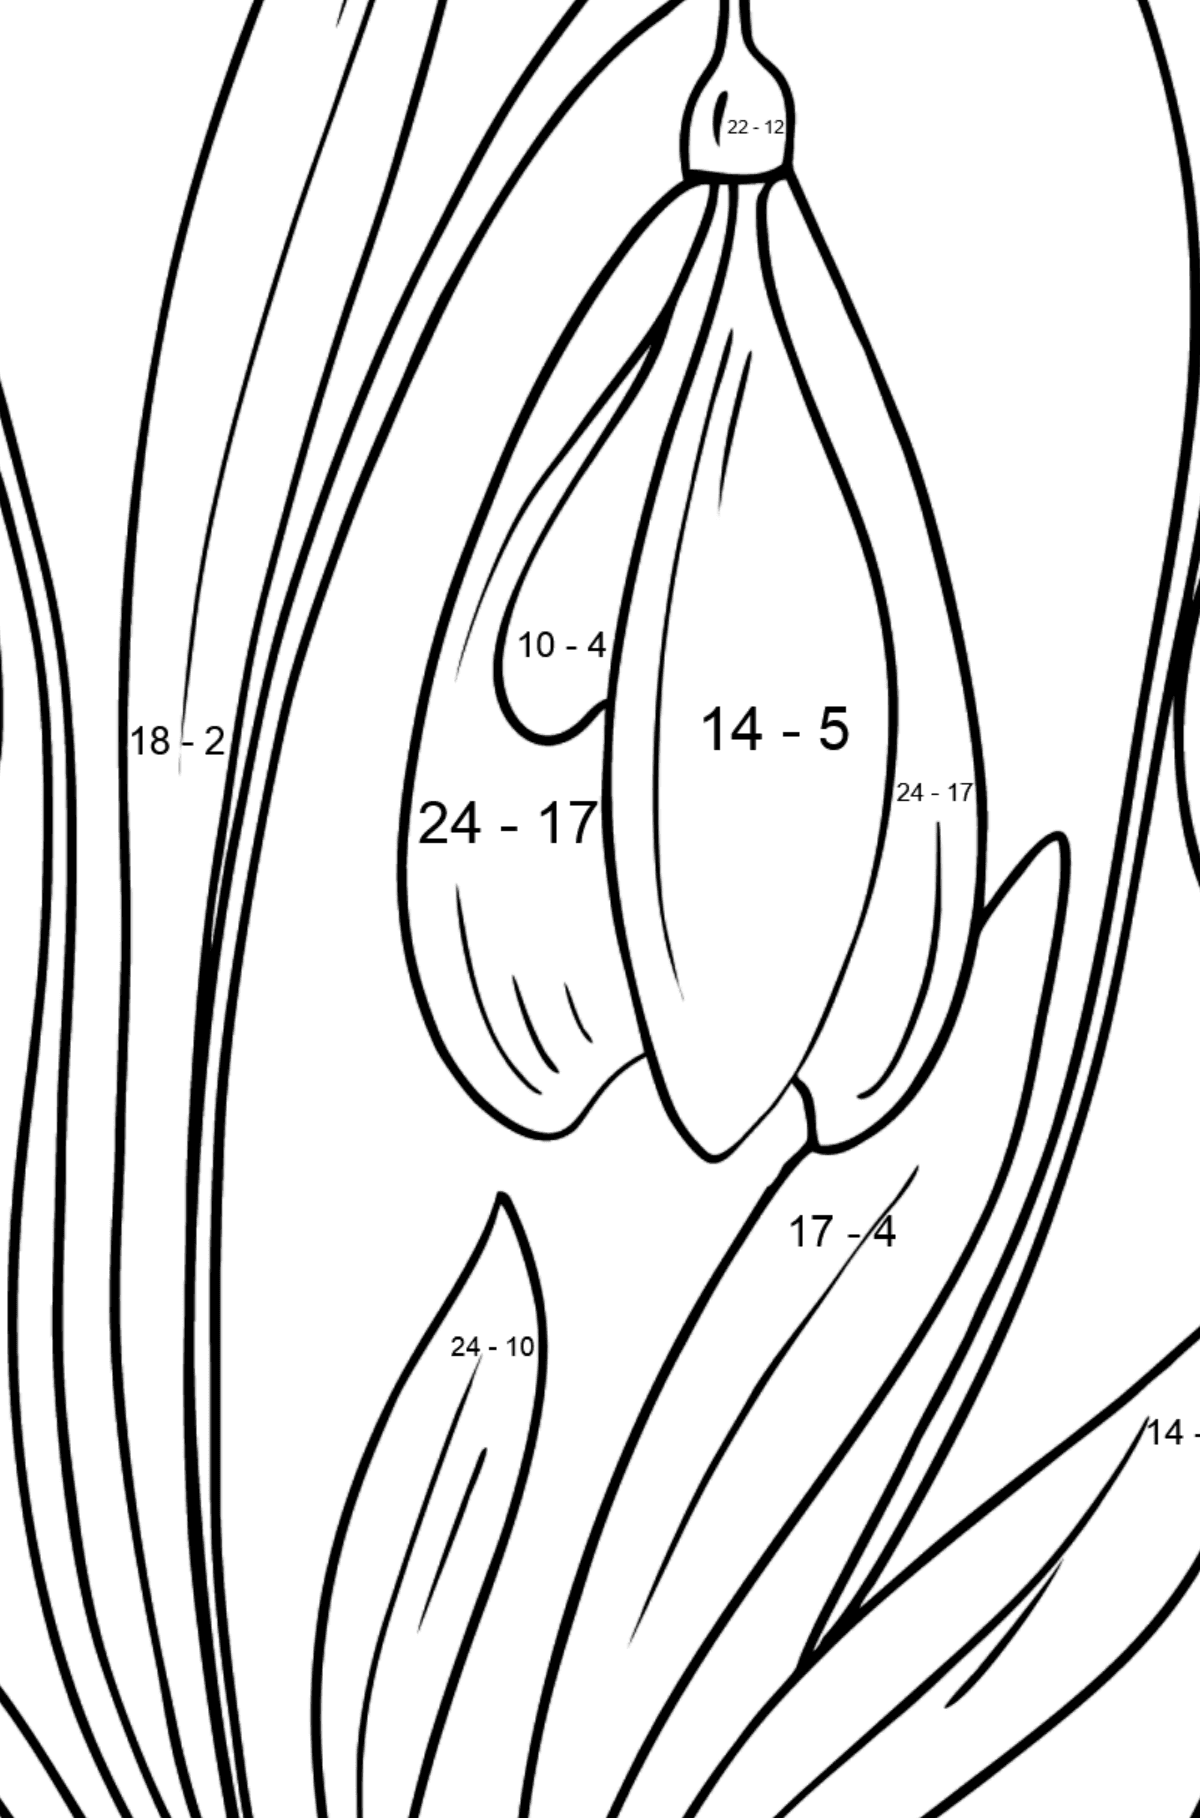 Snowdrops Coloring Page - Math Coloring - Subtraction for Kids